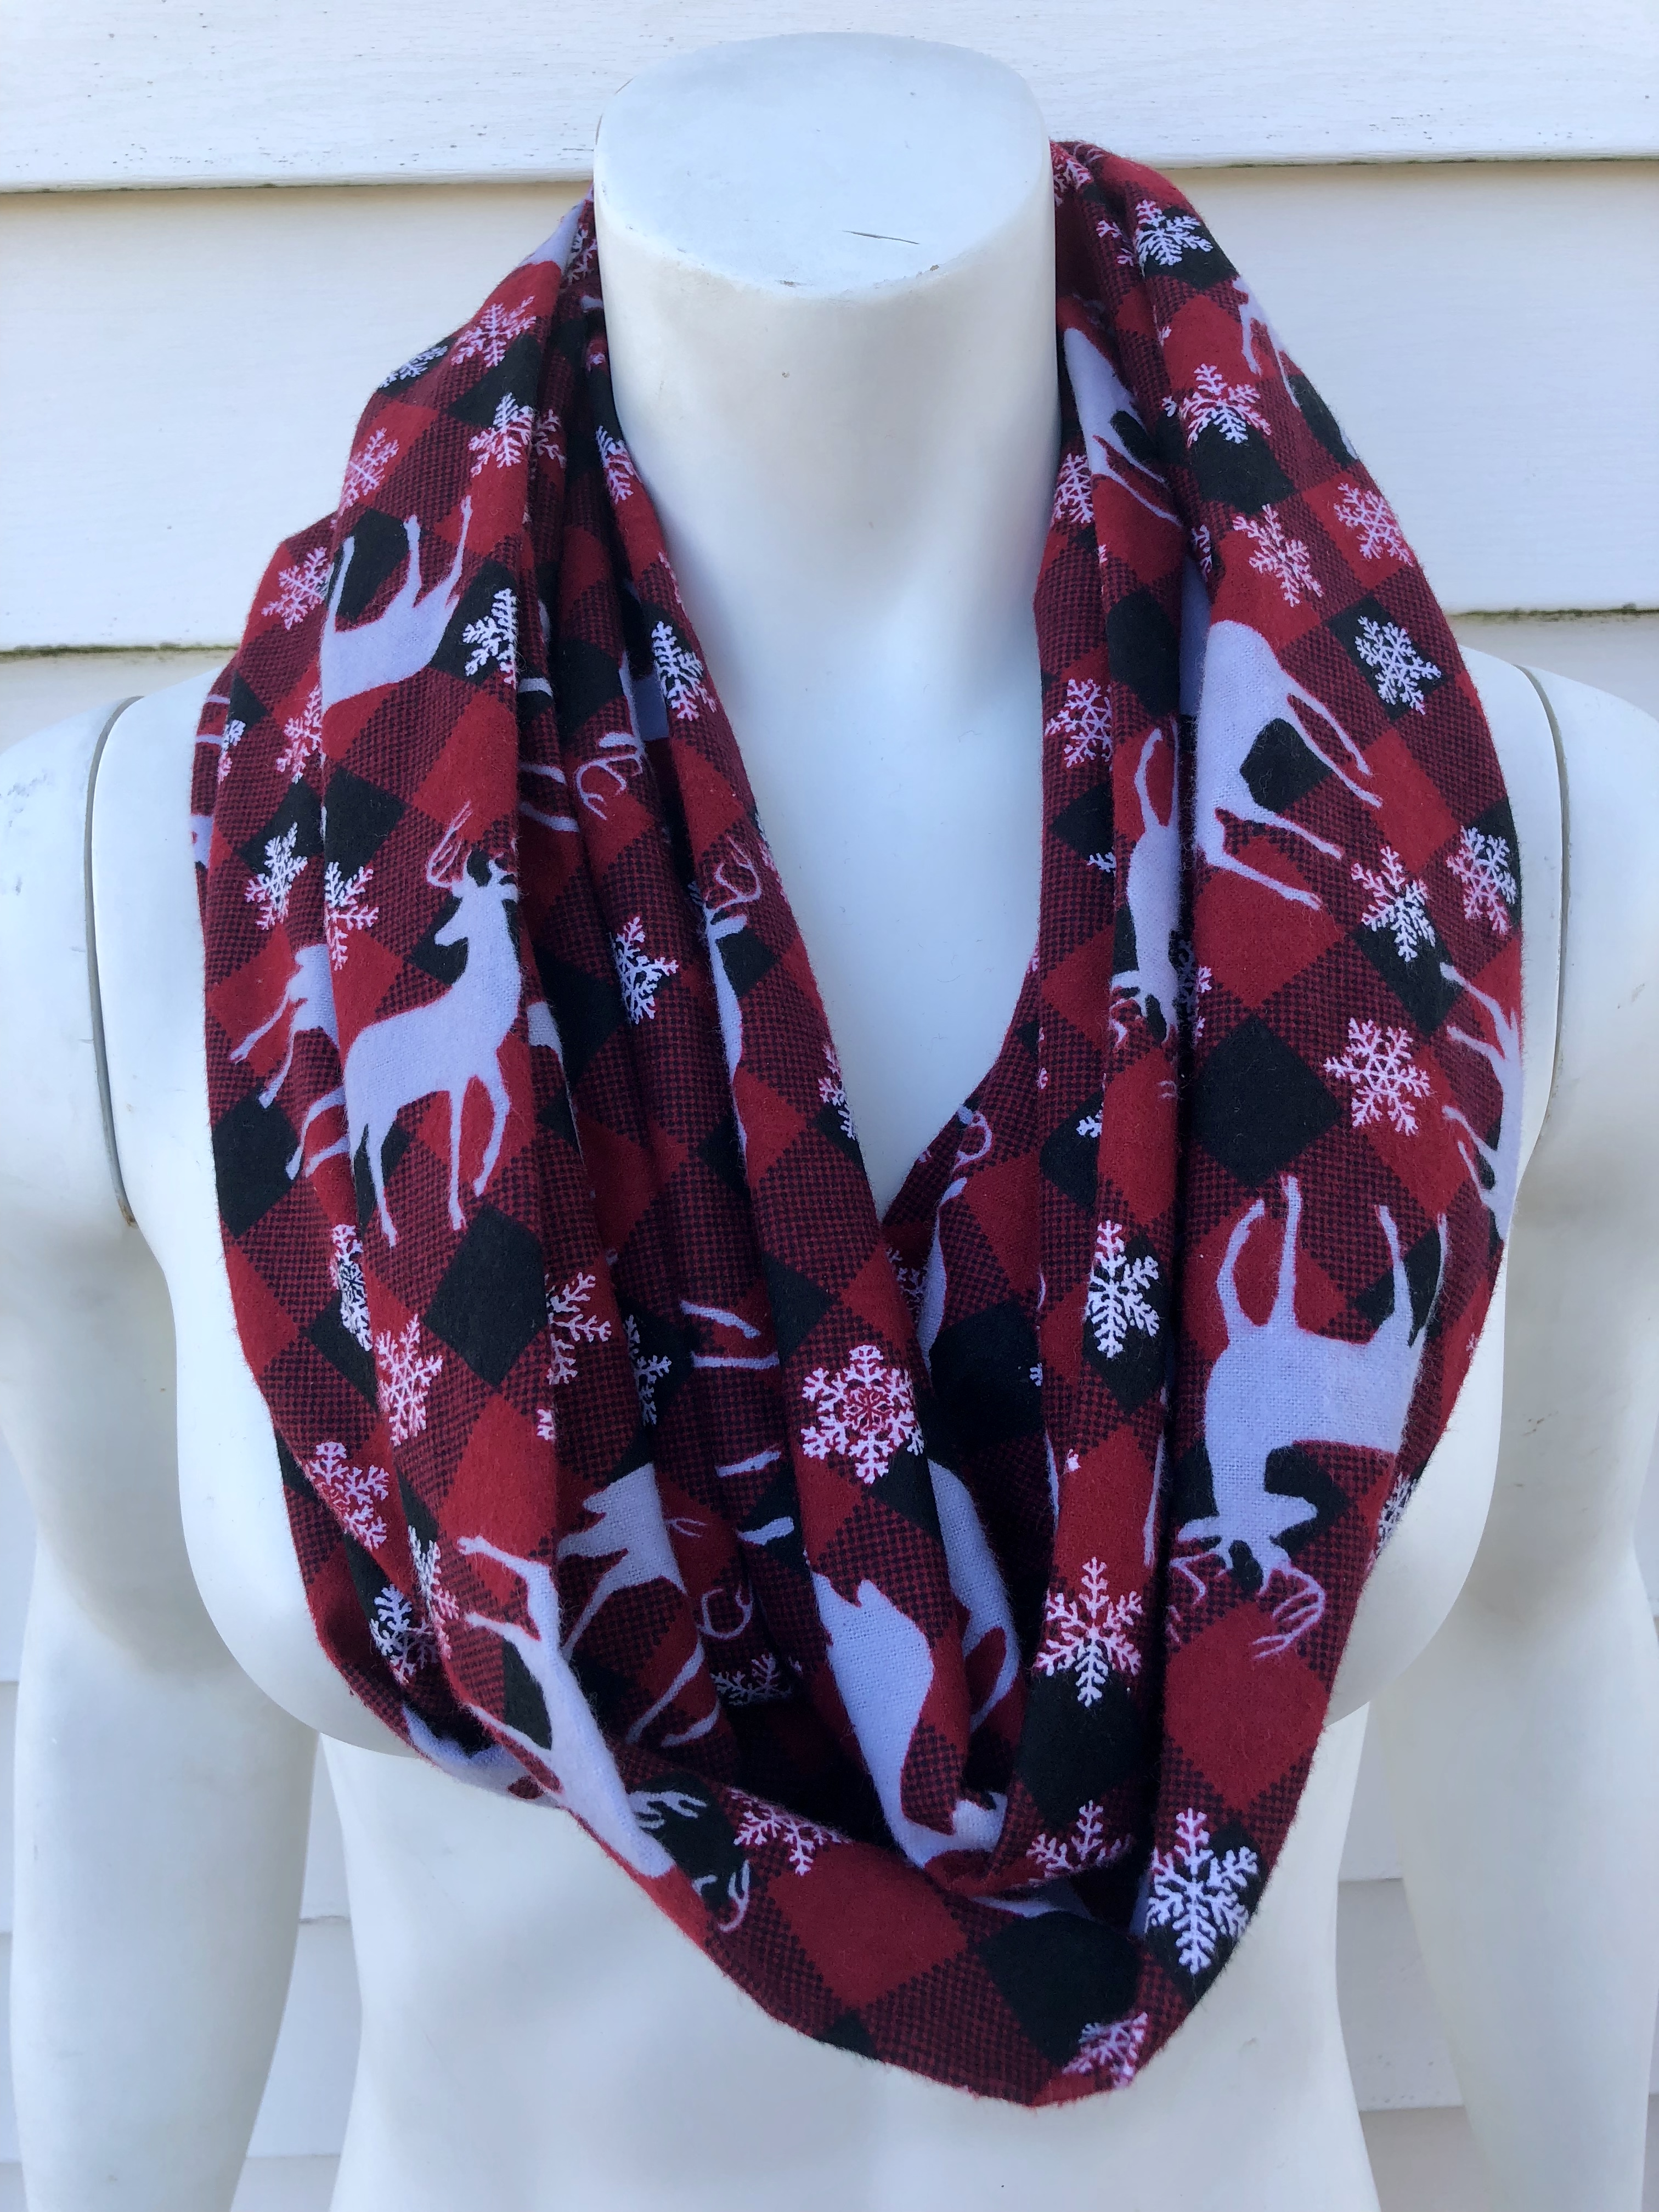 Christmas Scarf.Christmas Scarf Toddler Scarf Kid S Scarf Women S Scarf From Nicole Ray Shop